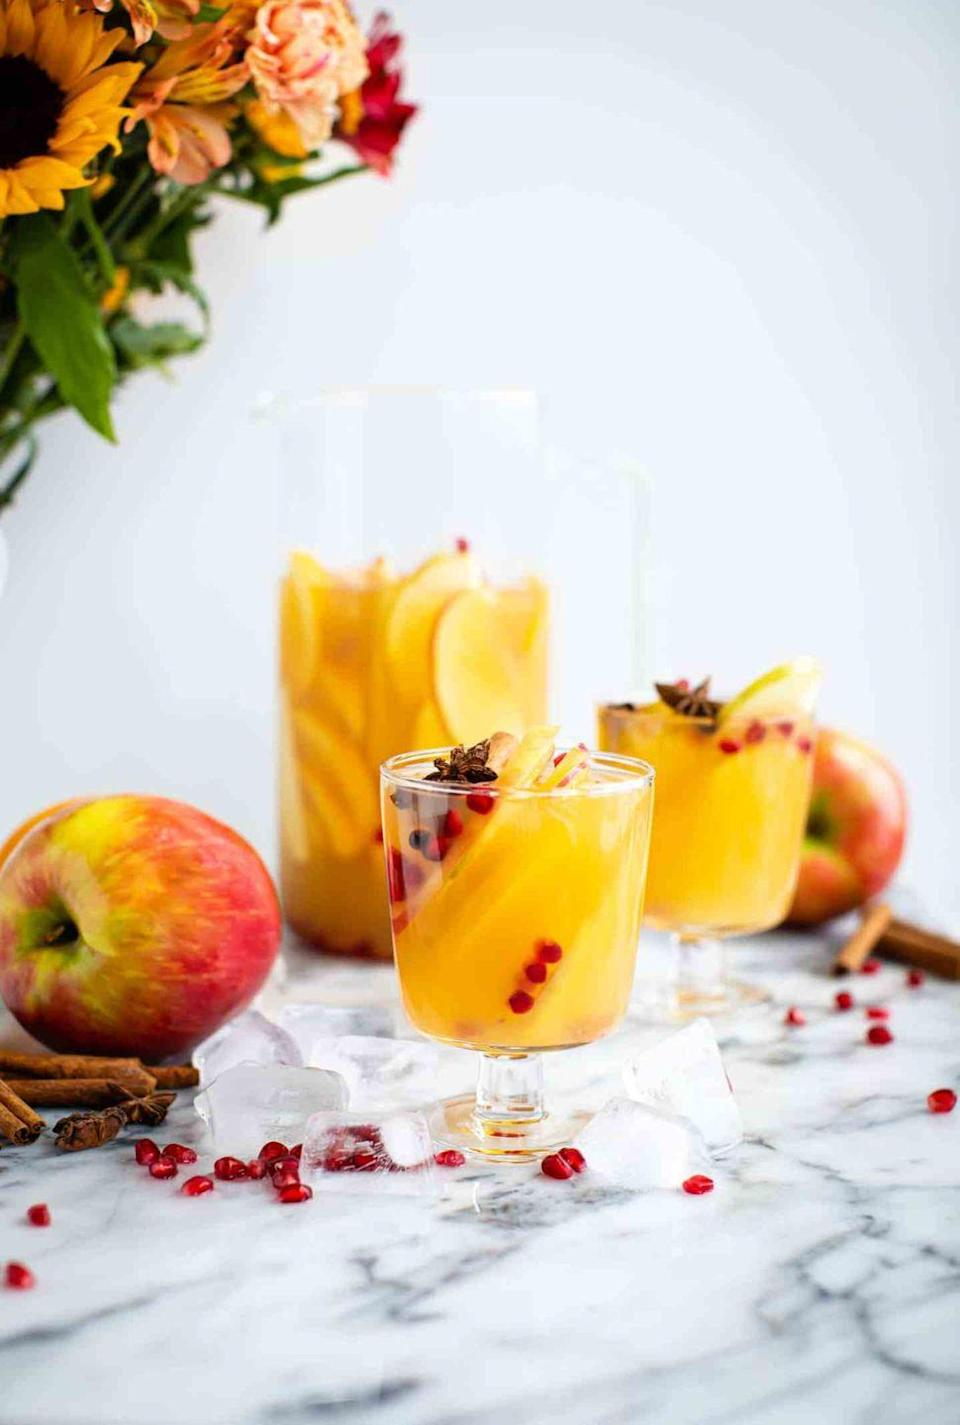 """<p>Sangria fans will love this white wine version that's packed with autumnal flavors like apples, cinnamon, and oranges. Give it a pop of color with a handful of pomegranate seeds. </p><p><strong>Get the recipe at <a href=""""https://www.butterbeready.com/autumn-apple-sangria/"""" rel=""""nofollow noopener"""" target=""""_blank"""" data-ylk=""""slk:Butter Be Ready"""" class=""""link rapid-noclick-resp"""">Butter Be Ready</a>. </strong></p><p><a class=""""link rapid-noclick-resp"""" href=""""https://go.redirectingat.com?id=74968X1596630&url=https%3A%2F%2Fwww.walmart.com%2Fsearch%2F%3Fquery%3Dbar%2Btools&sref=https%3A%2F%2Fwww.thepioneerwoman.com%2Fholidays-celebrations%2Fg36982659%2Fhalloween-drink-recipes%2F"""" rel=""""nofollow noopener"""" target=""""_blank"""" data-ylk=""""slk:SHOP BAR TOOLS"""">SHOP BAR TOOLS </a></p>"""